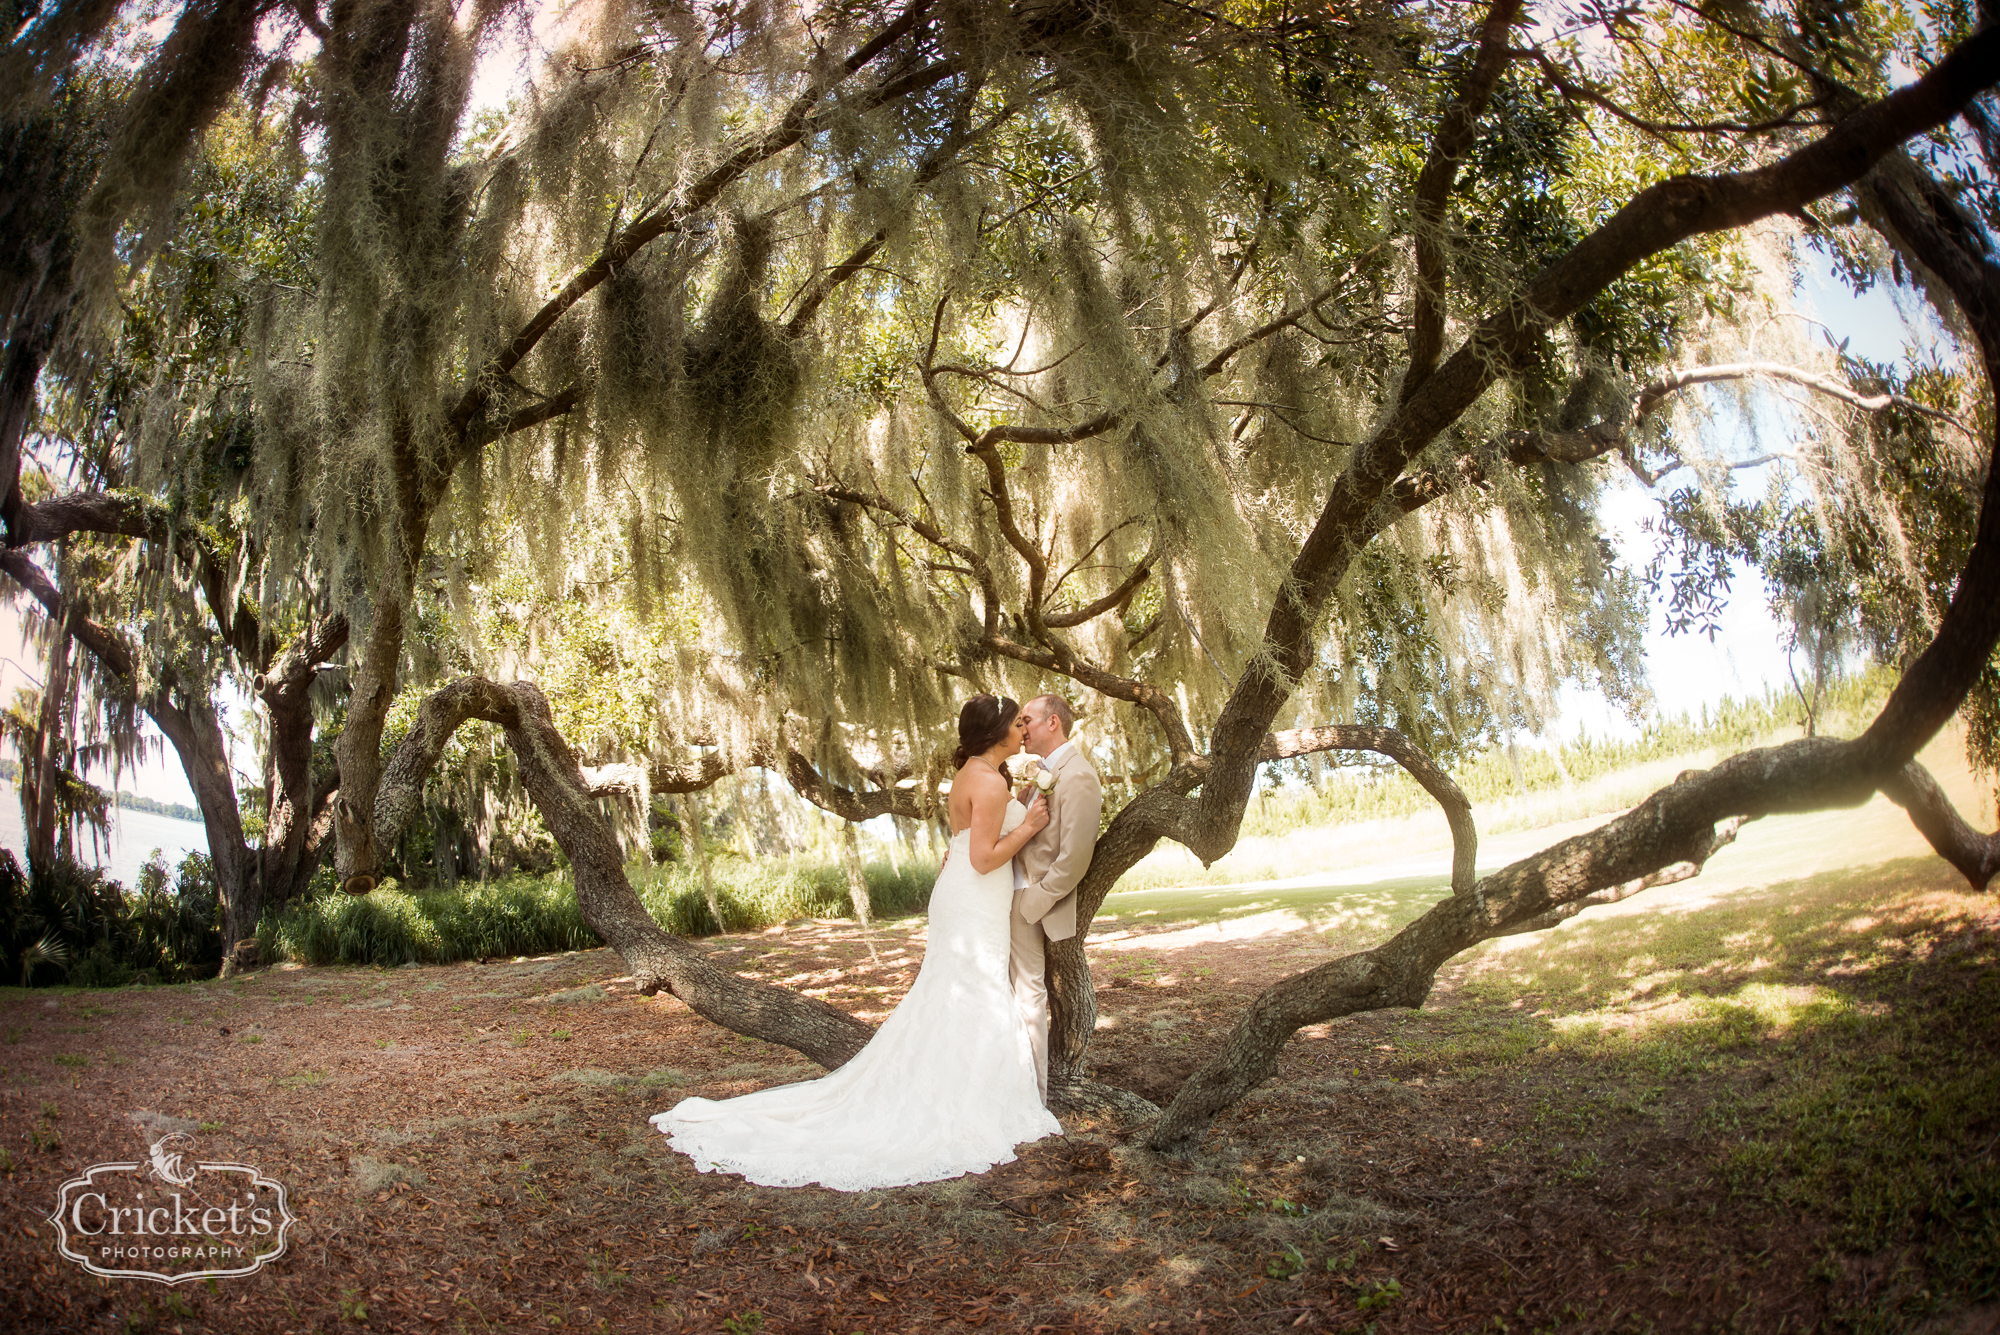 Bride and Groom sitting in oak tree for their wedding portrait